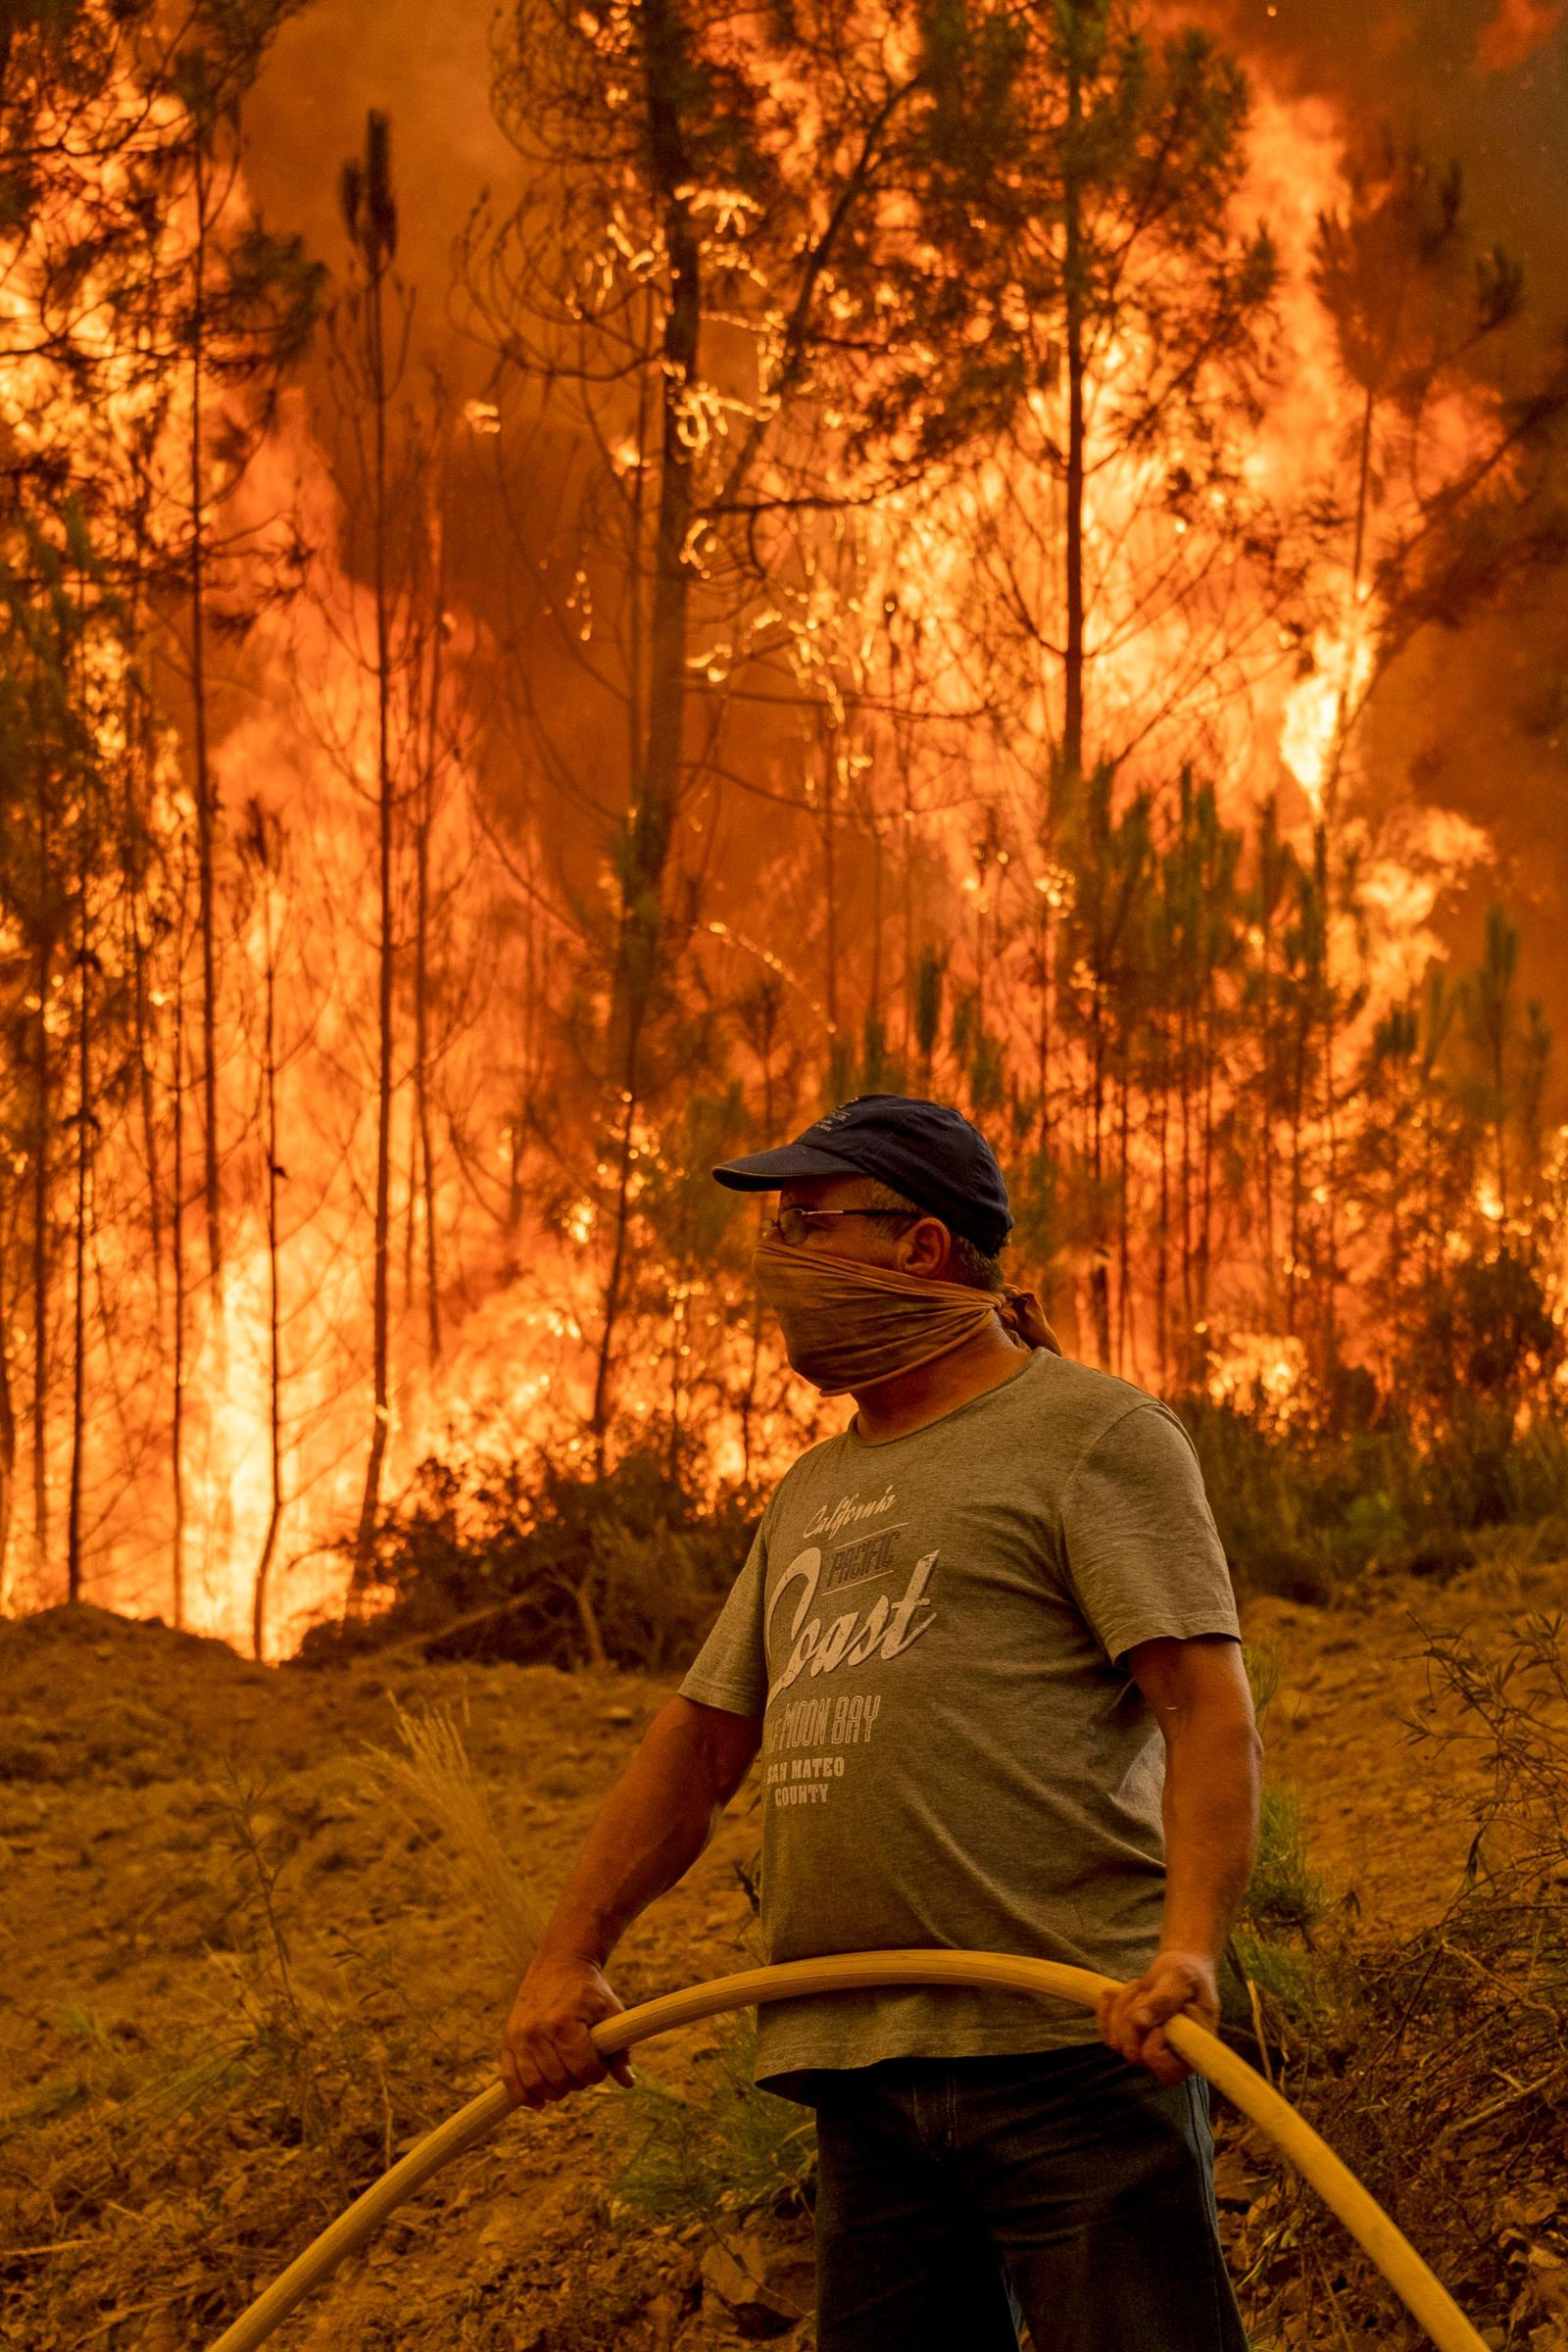 A villager tries to extinguish a wildfire at the village of Chaveira, near Macao, in central Portugal on Monday, July 22, 2019. (AP Photo/Sergio Azenha)